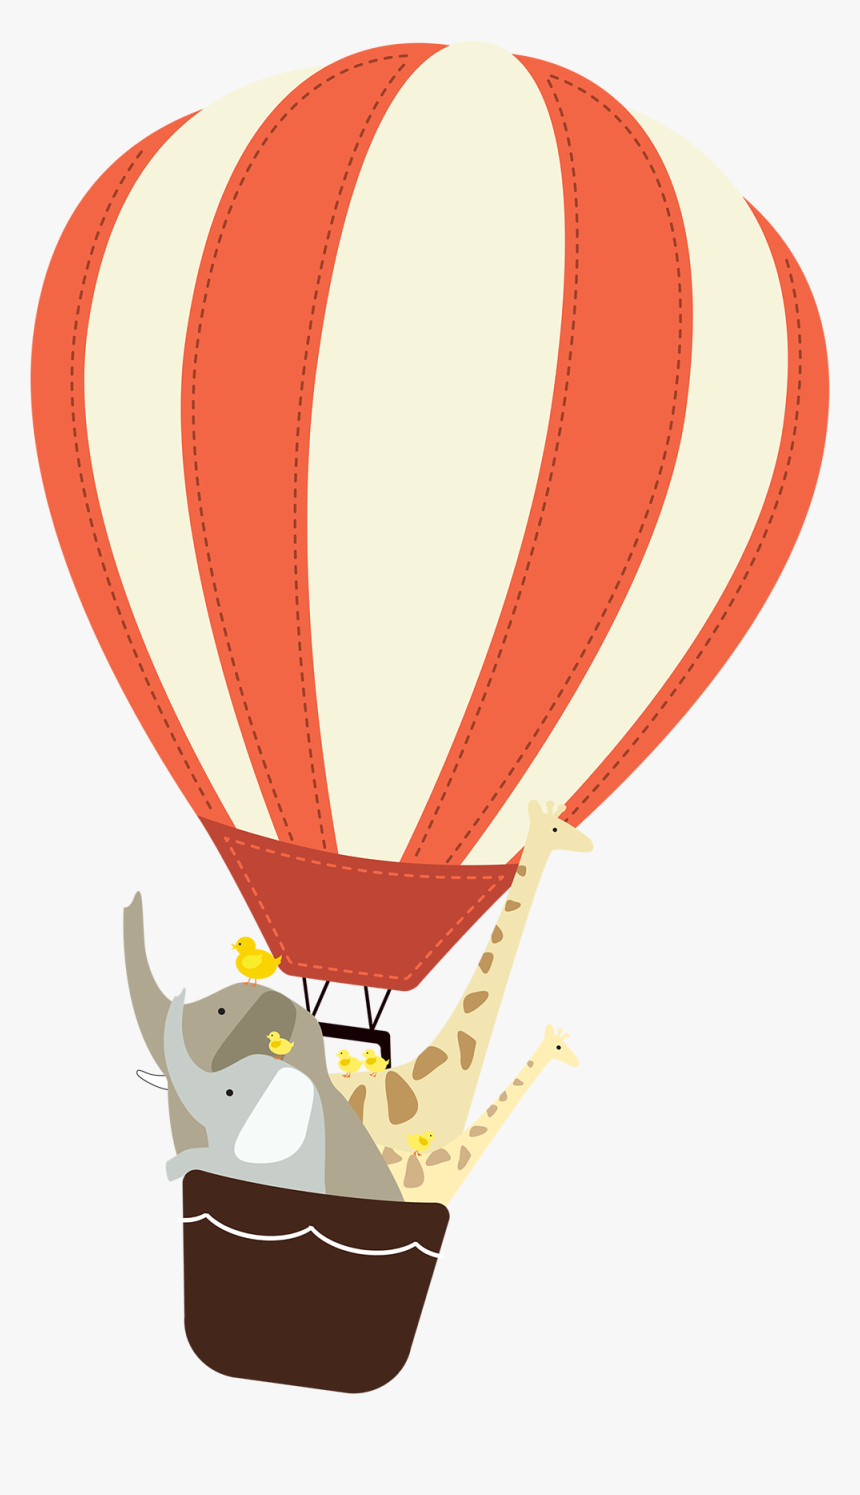 Hot Air Balloon,hot Air Ballooning,clip - Hot Air Balloons Cartoon Images Png, Transparent Png, Free Download